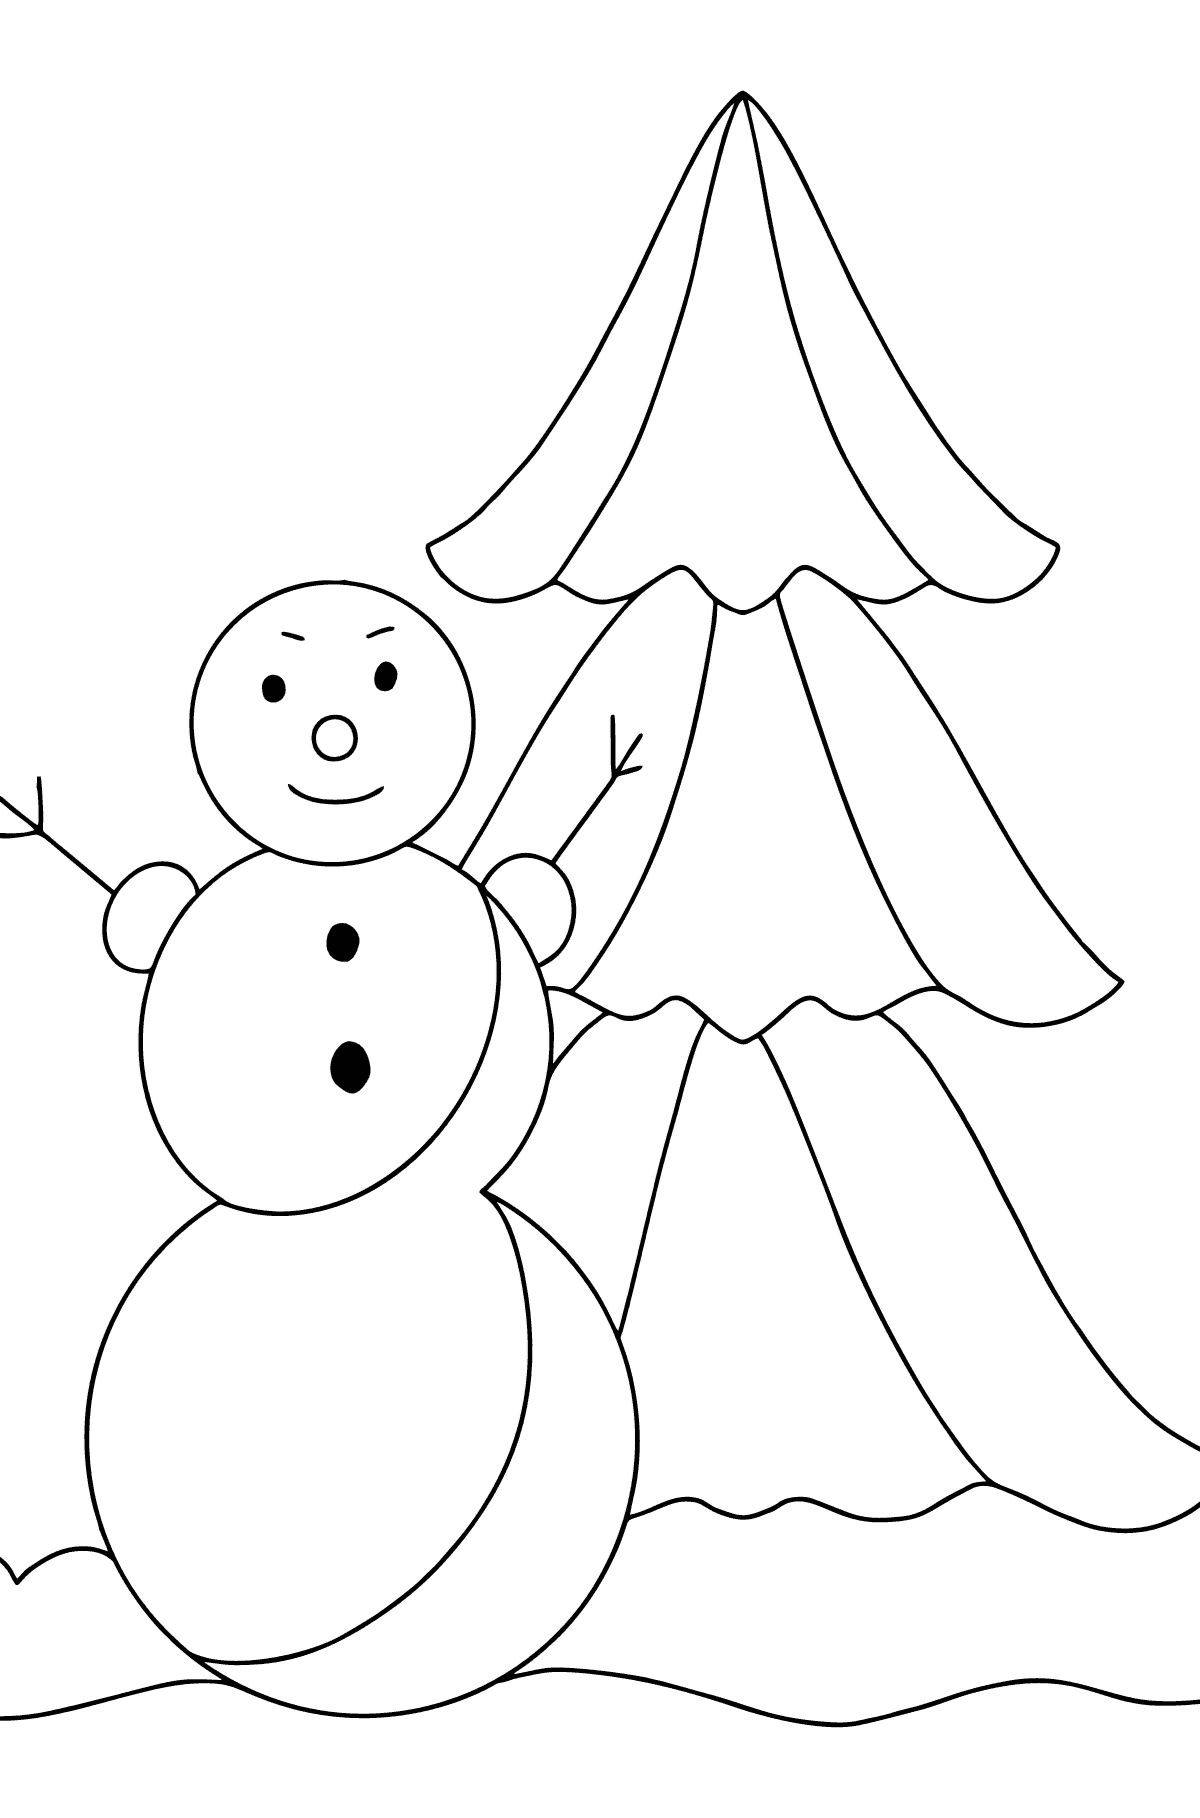 Winter Coloring Page - A Snowman with a Beautiful Christmas Tree for Children